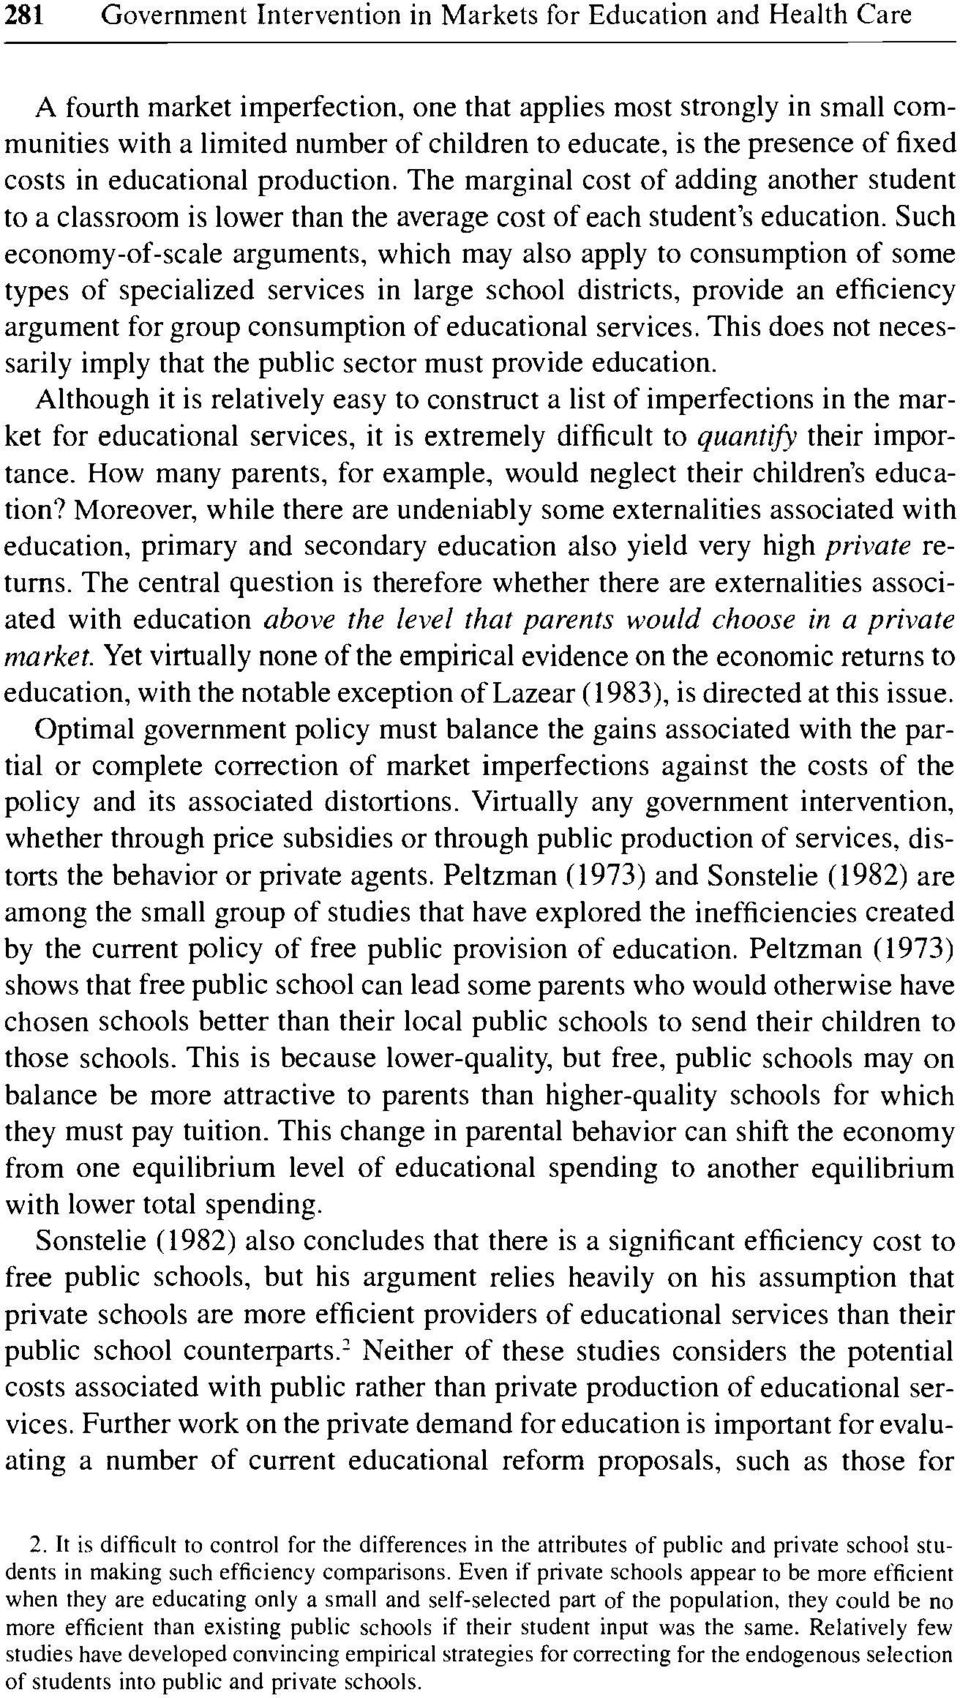 Such economy-of-scale arguments, which may also apply to consumption of some types of specialized services in large school districts, provide an efficiency argument for group consumption of